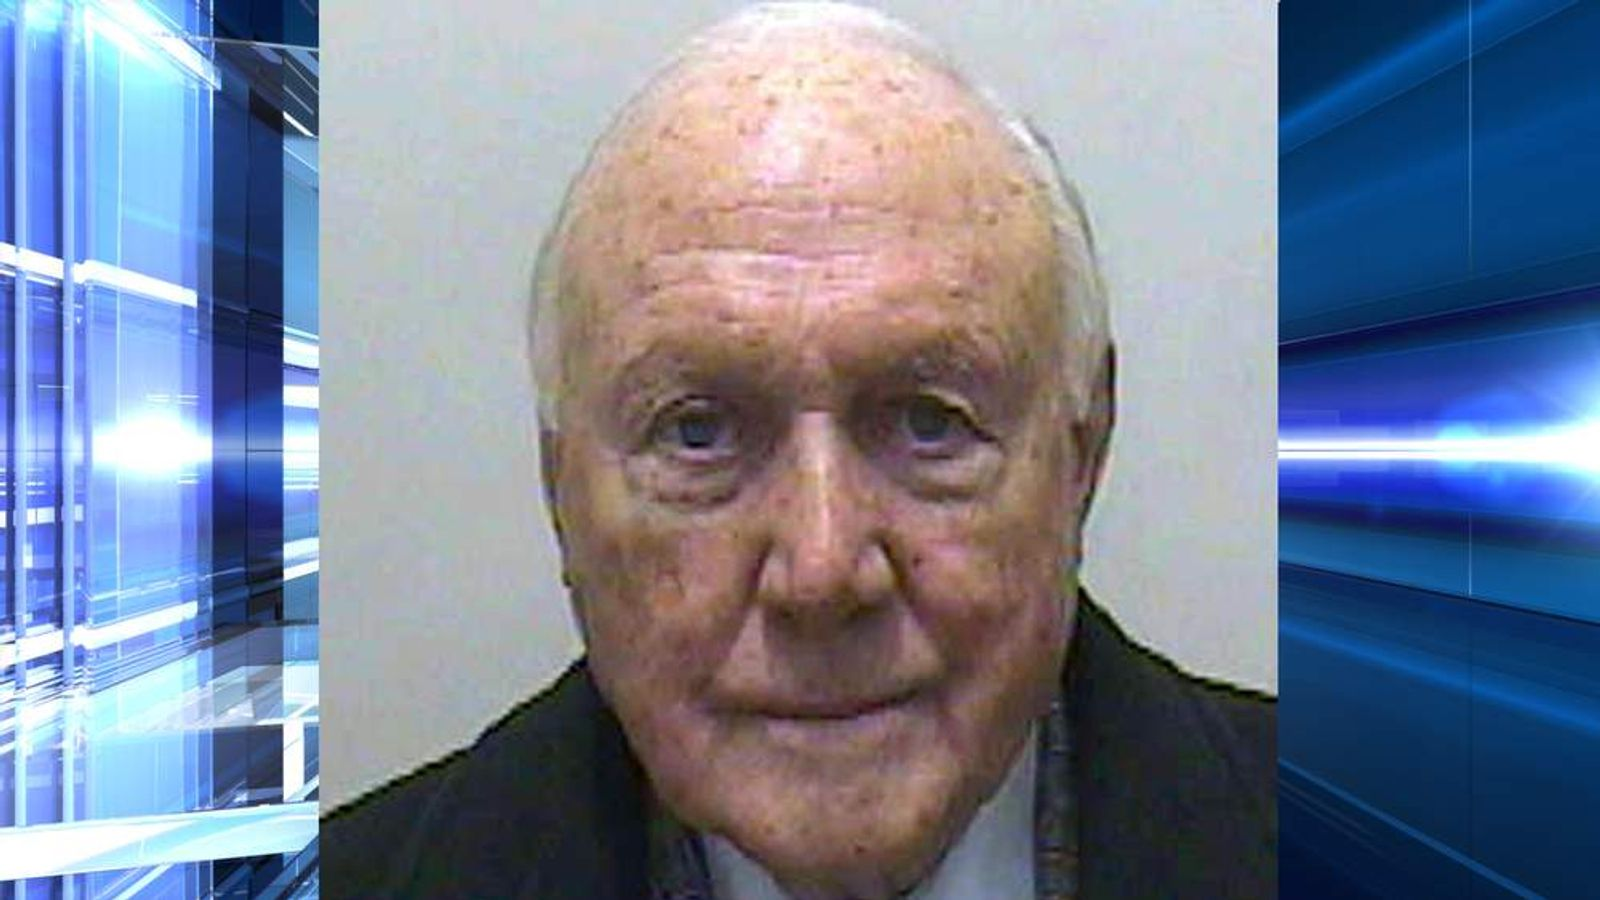 Stuart Hall Sentenced For Sexual Assaults